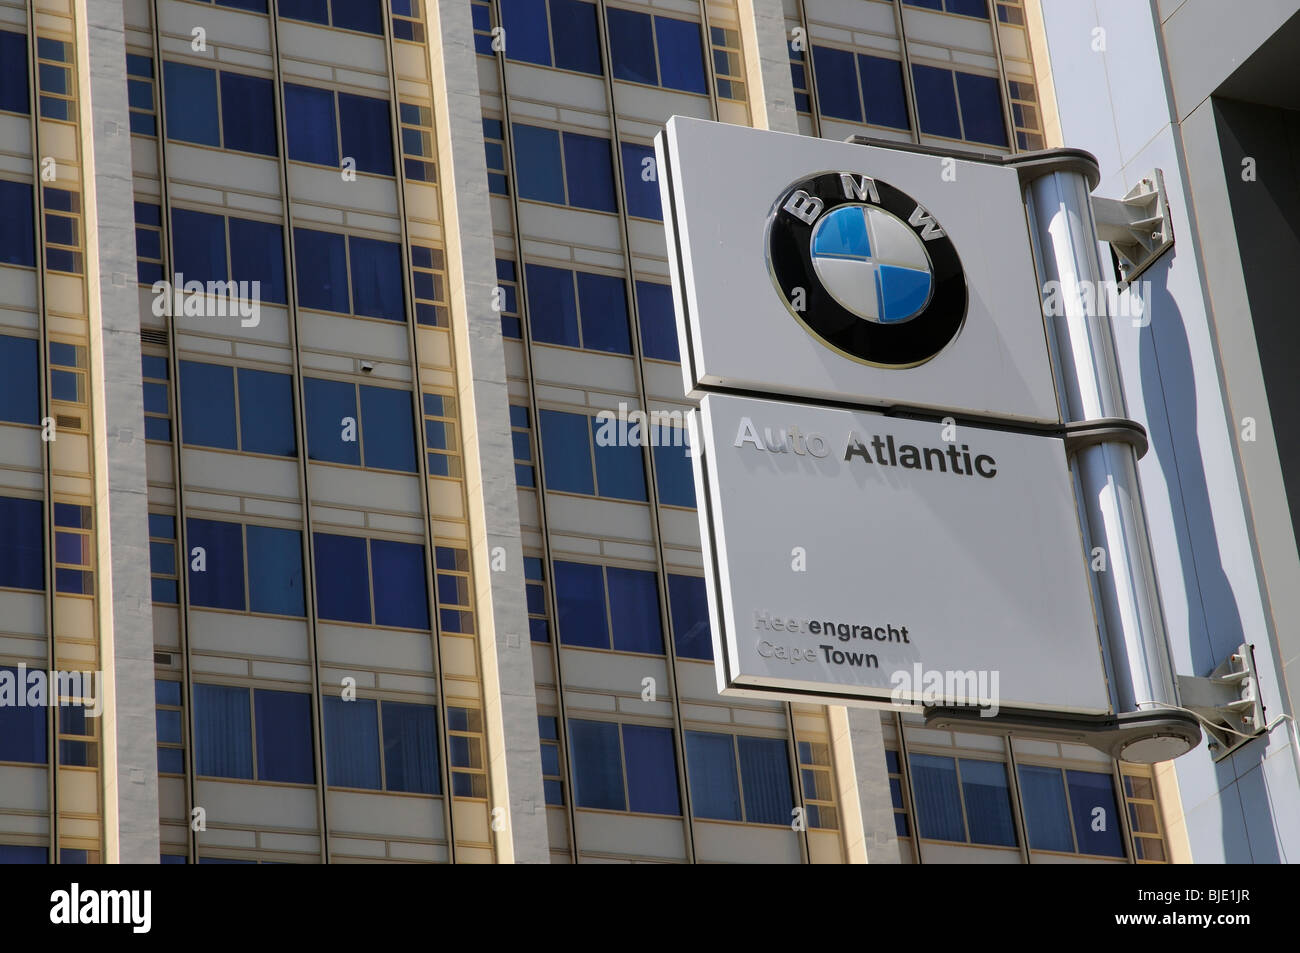 Bmw Dealers Stock Photos Amp Bmw Dealers Stock Images Alamy